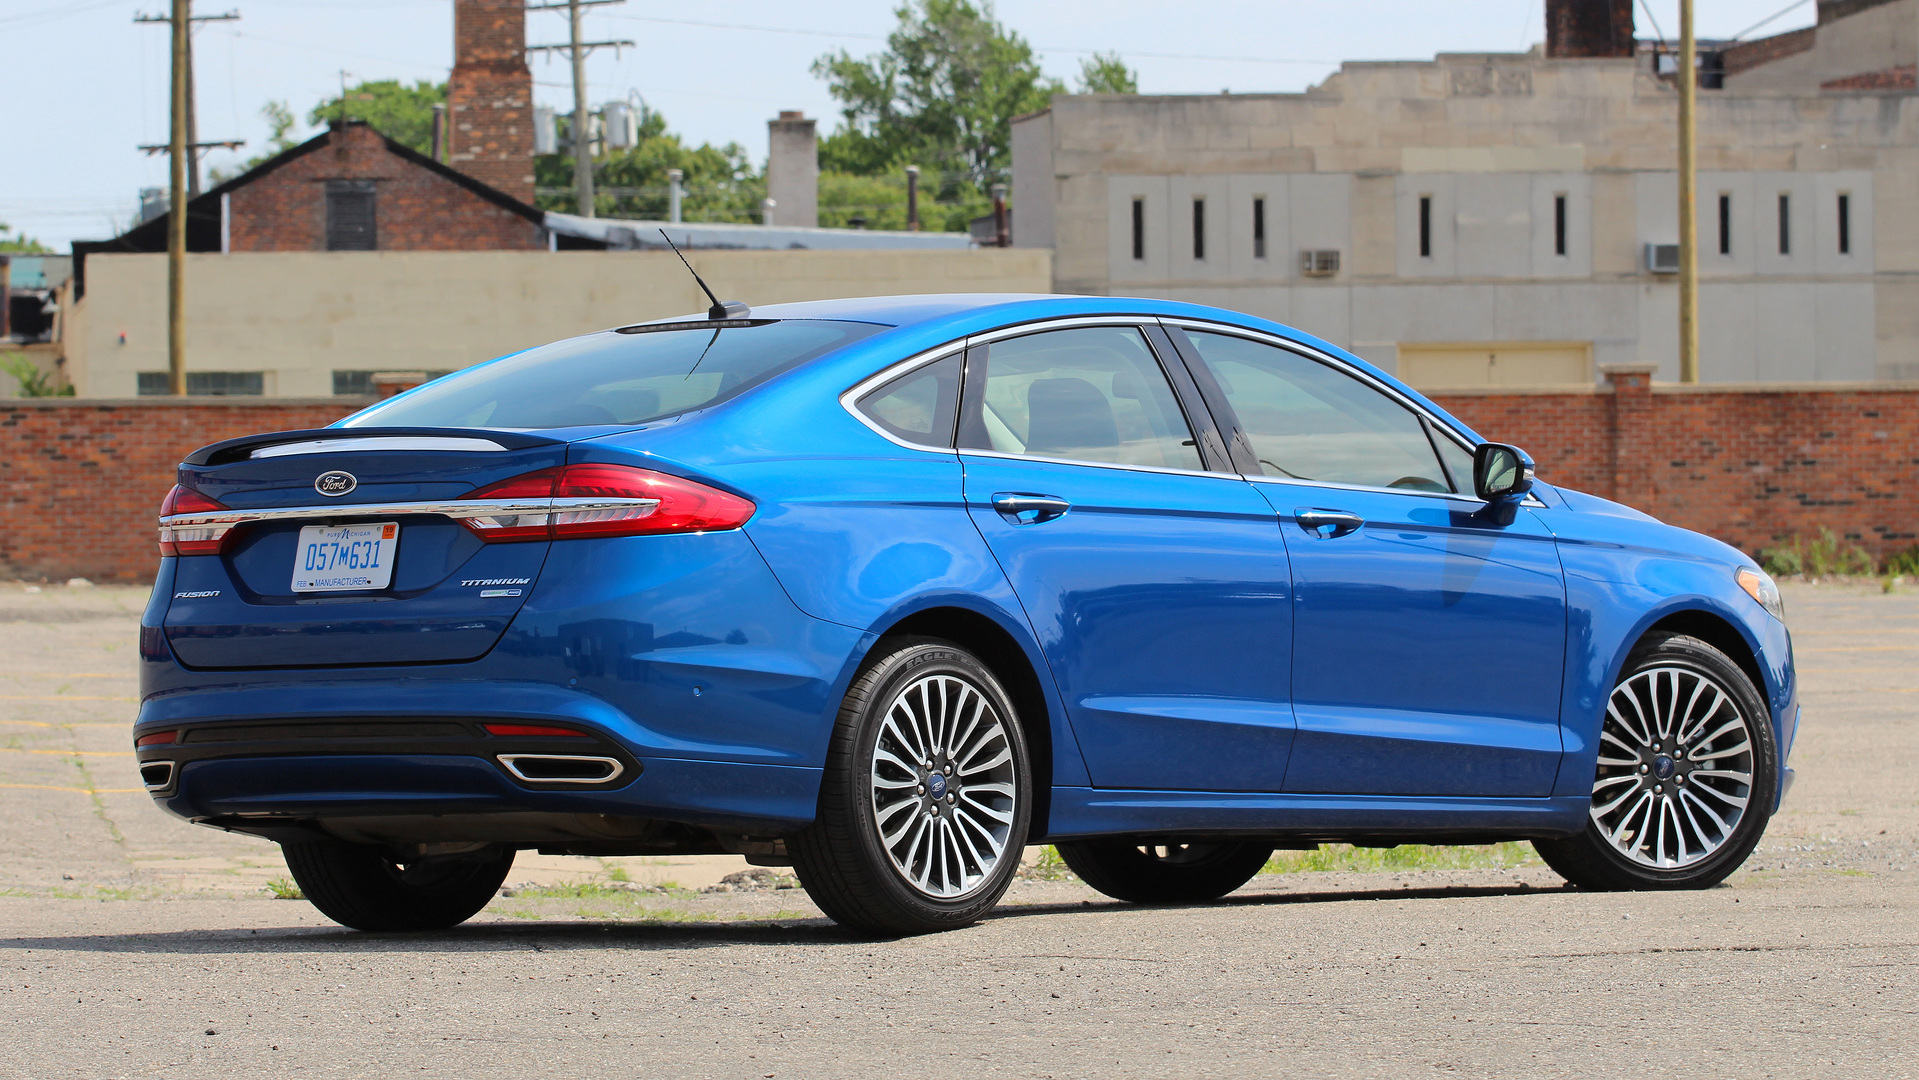 ford and fusion photo reviews test assistance hybrid s safety driver original car review platinum